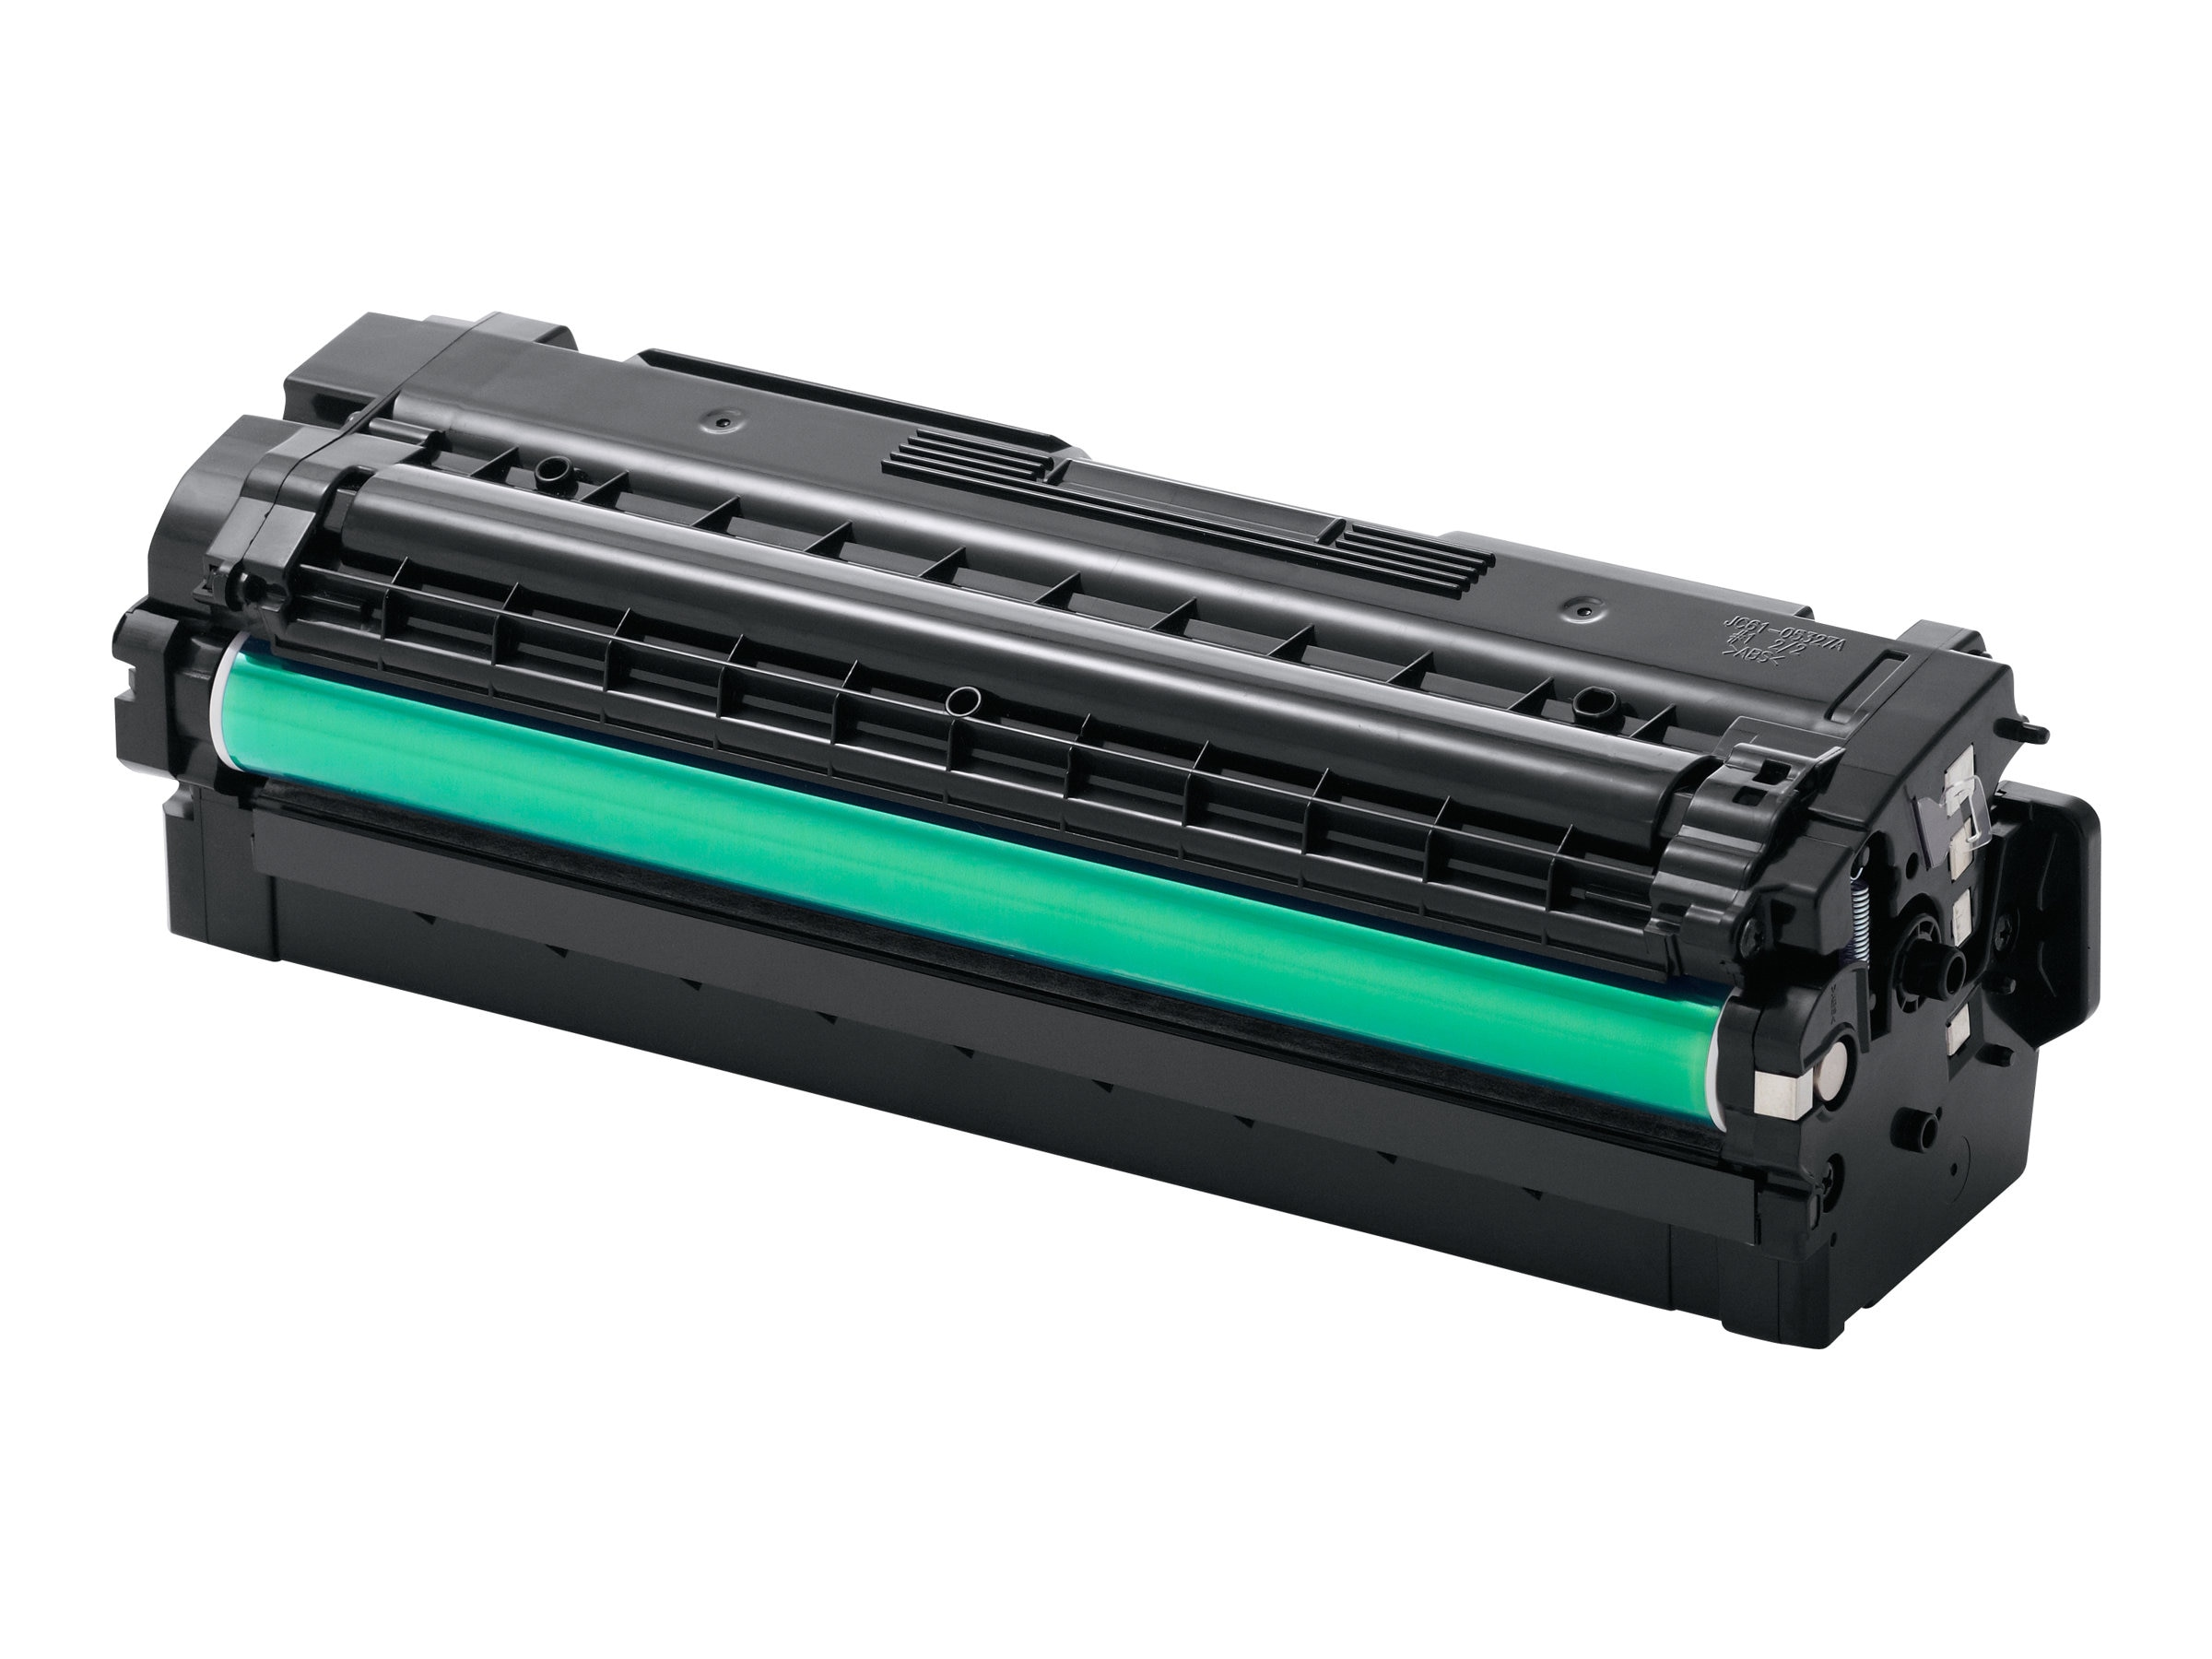 Samsung Magenta High Yield Toner Cartridge for CLX-6260FD & CLX-6260FW Color MFPs & CLP-680ND Color Printer